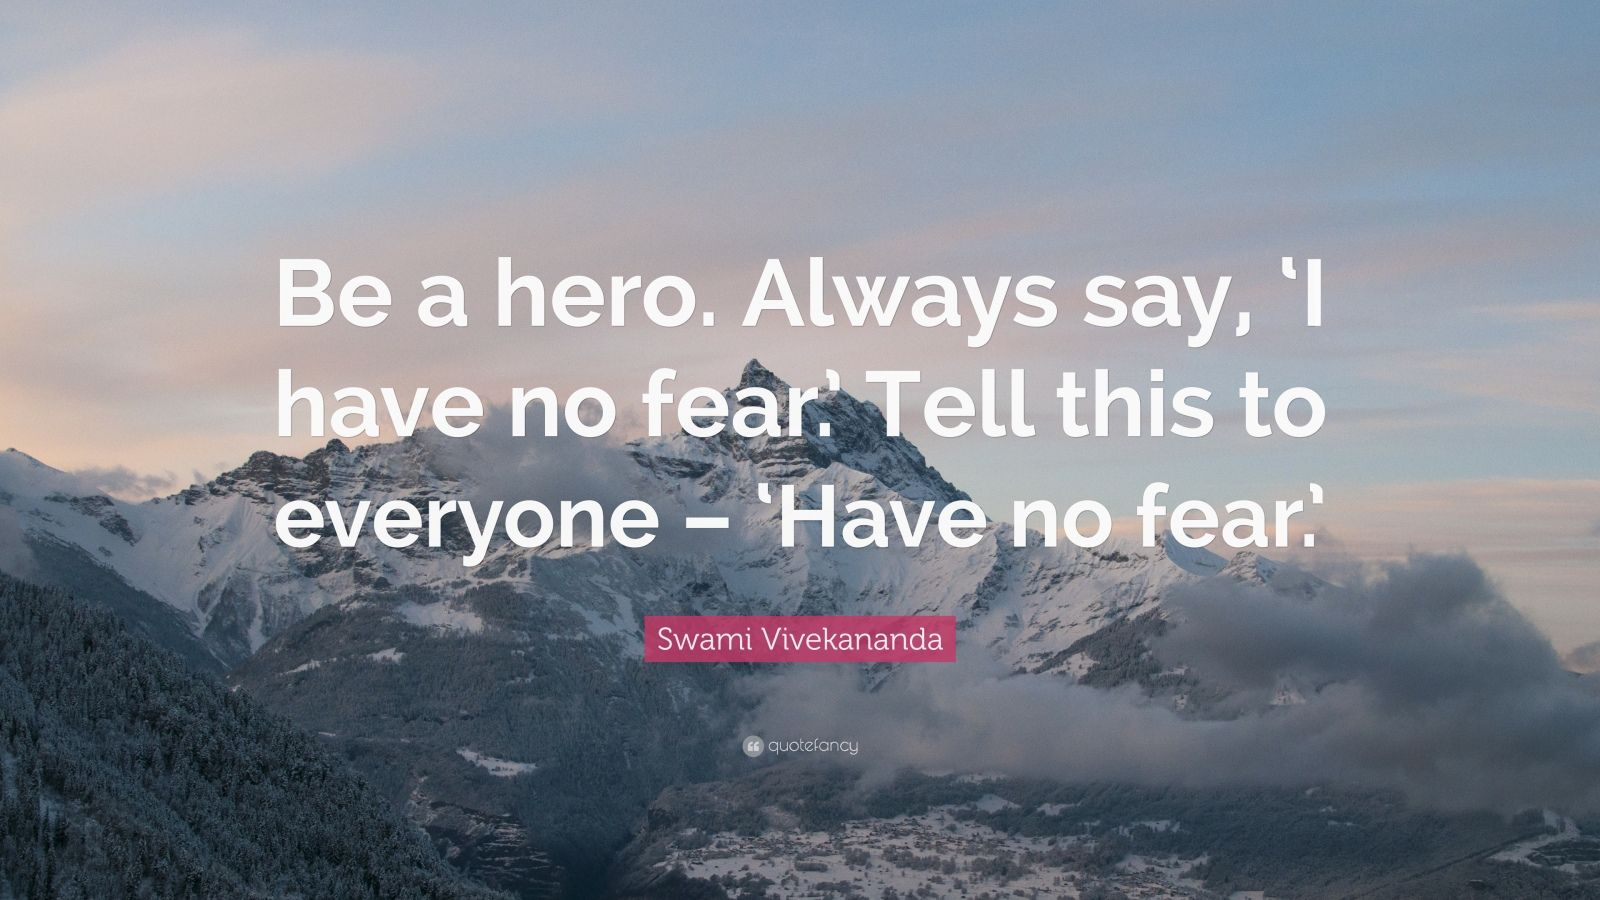 """Swami Vivekananda Quote: """"Be a hero. Always say, 'I have no fear.' Tell this to everyone – 'Have no fear.'"""""""